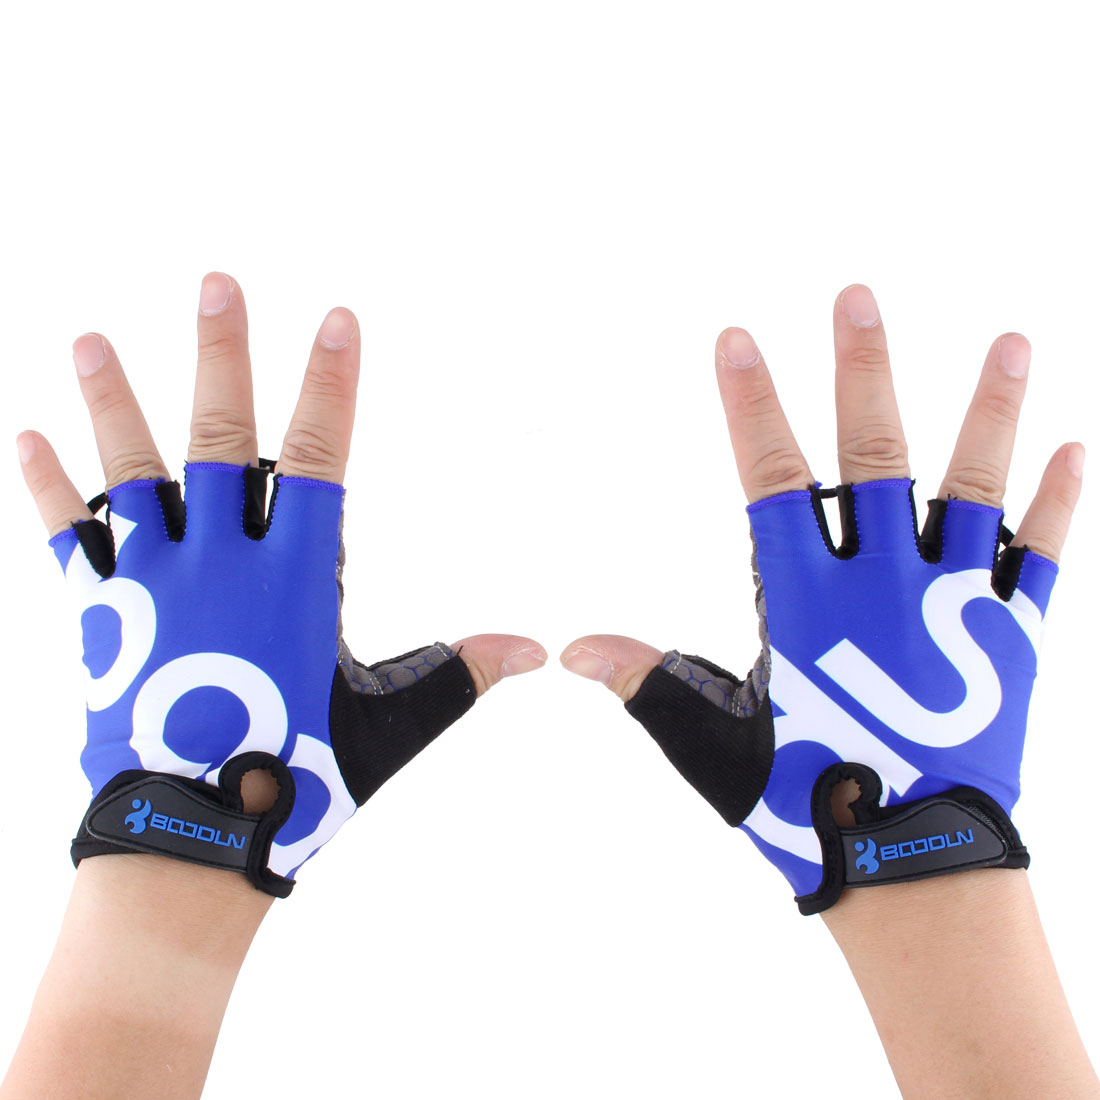 BOODUN Authorized Unisex Outdoor Sports Cycling Biking Exercise Adjustable Fitness Half Finger Gloves Blue L Size Pair